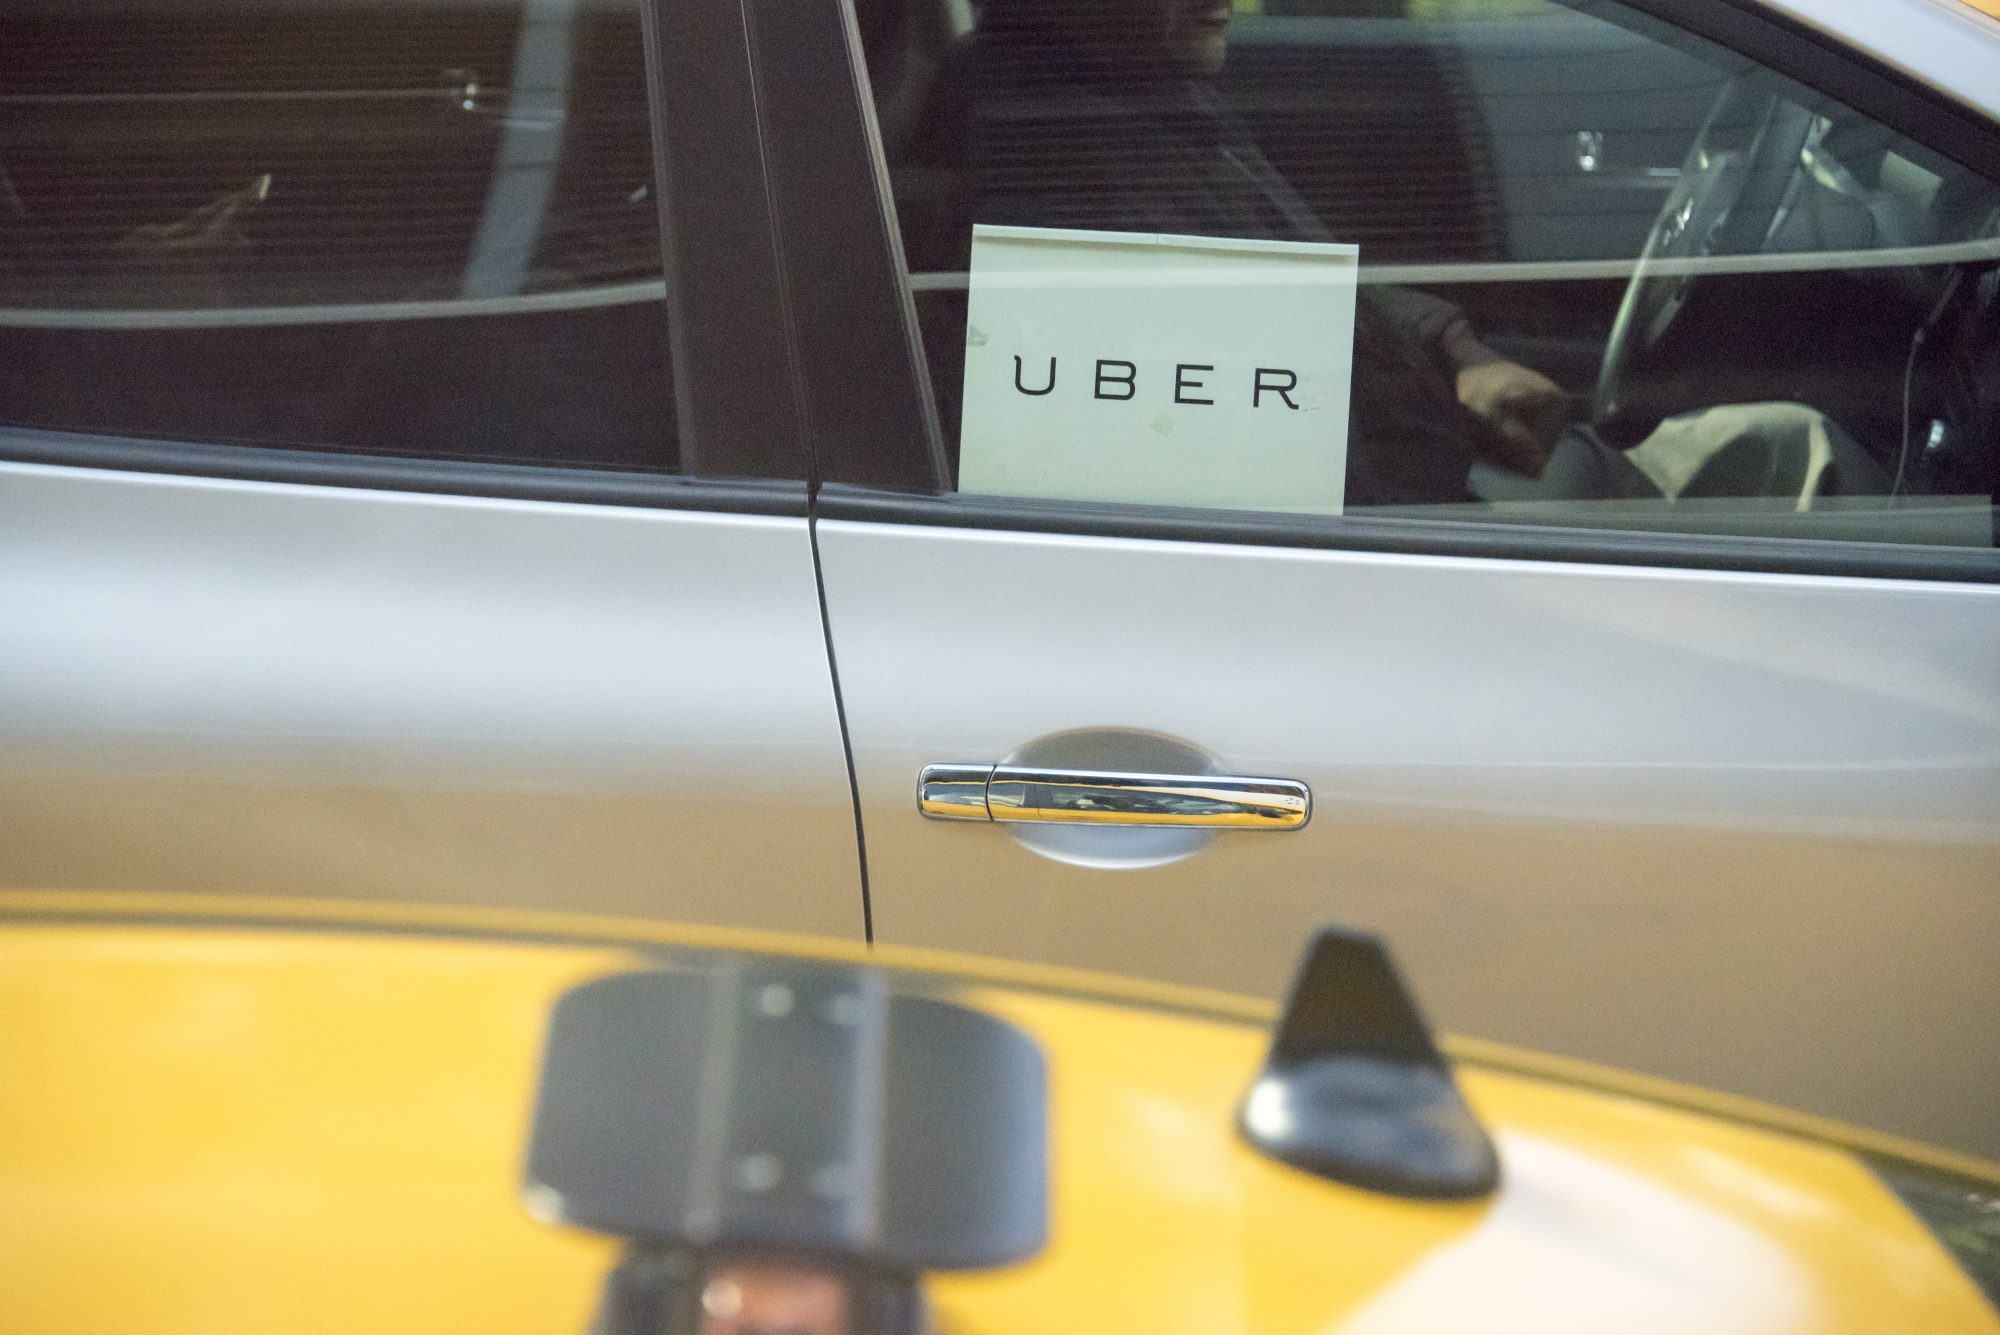 Uber and Taxi industry competition: Uber taxi service in New